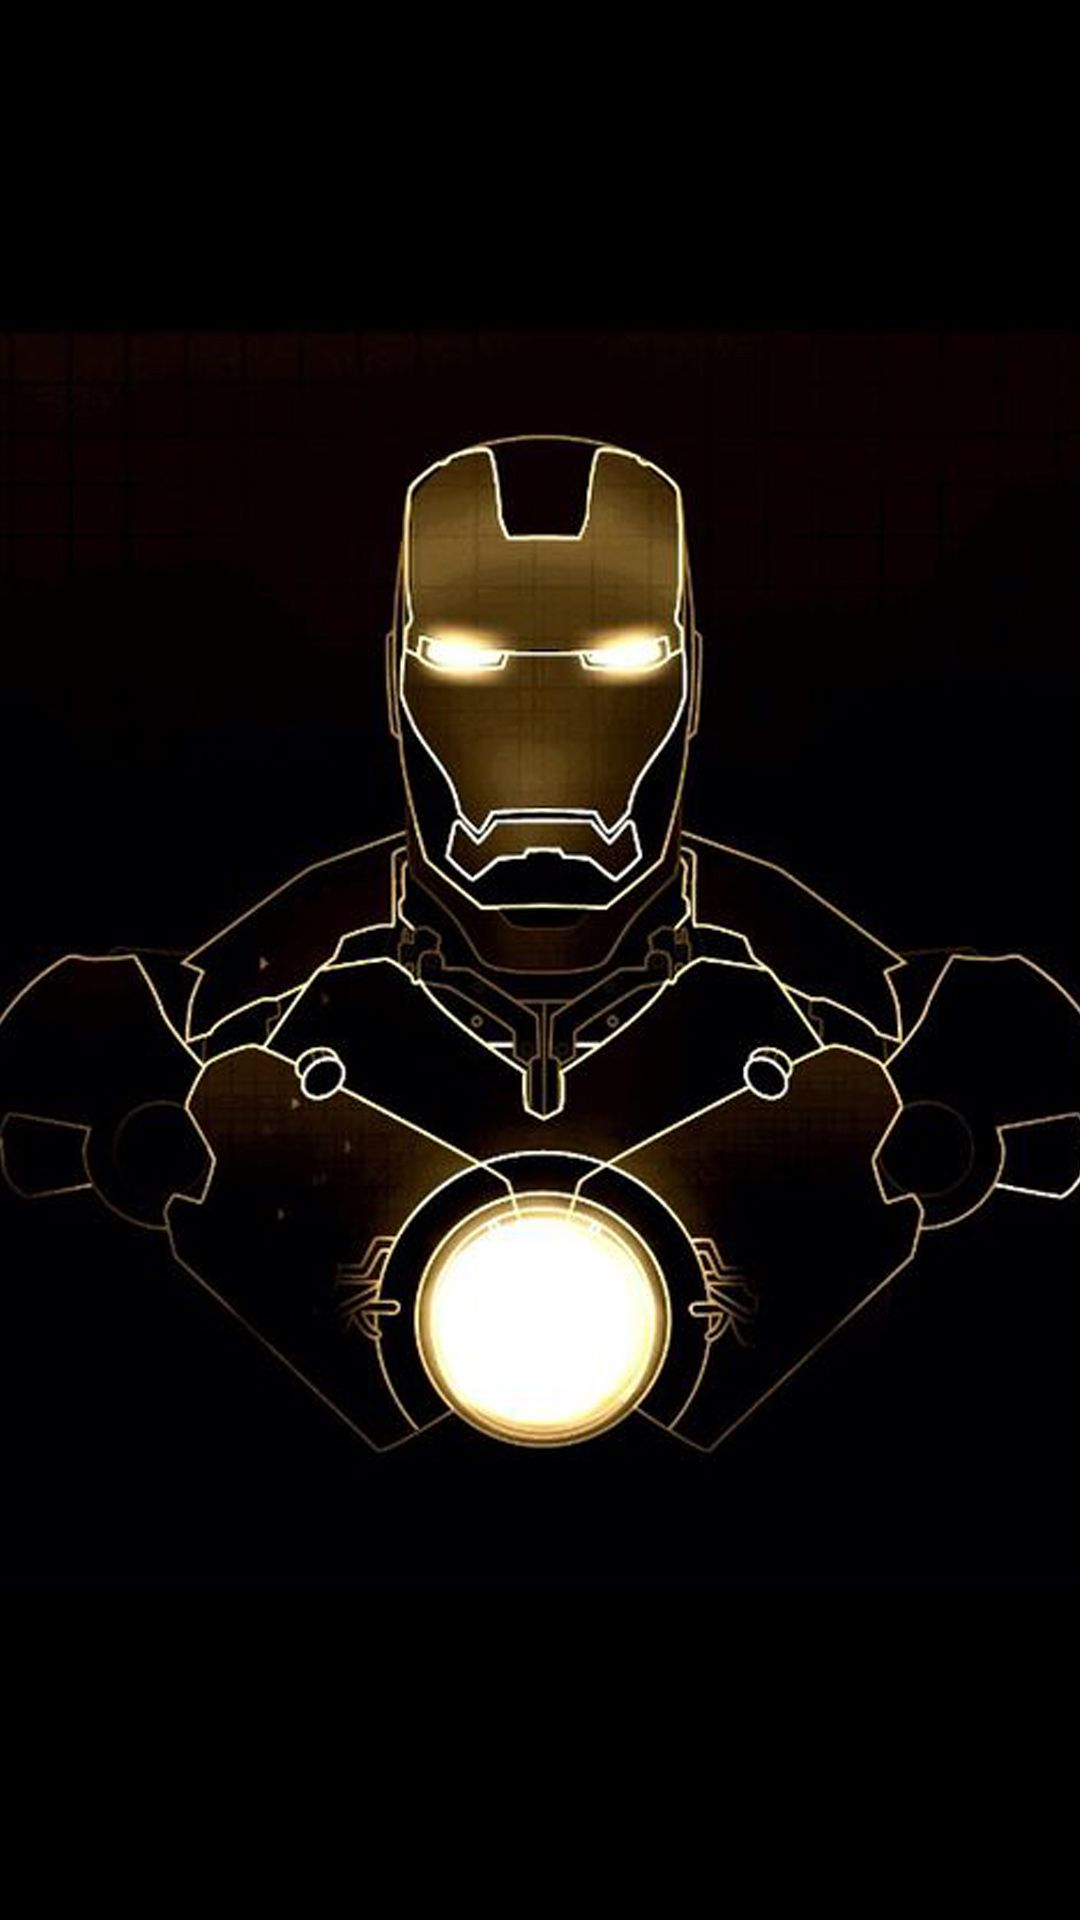 DownloadIron Man Iphone Wallpaper Creator